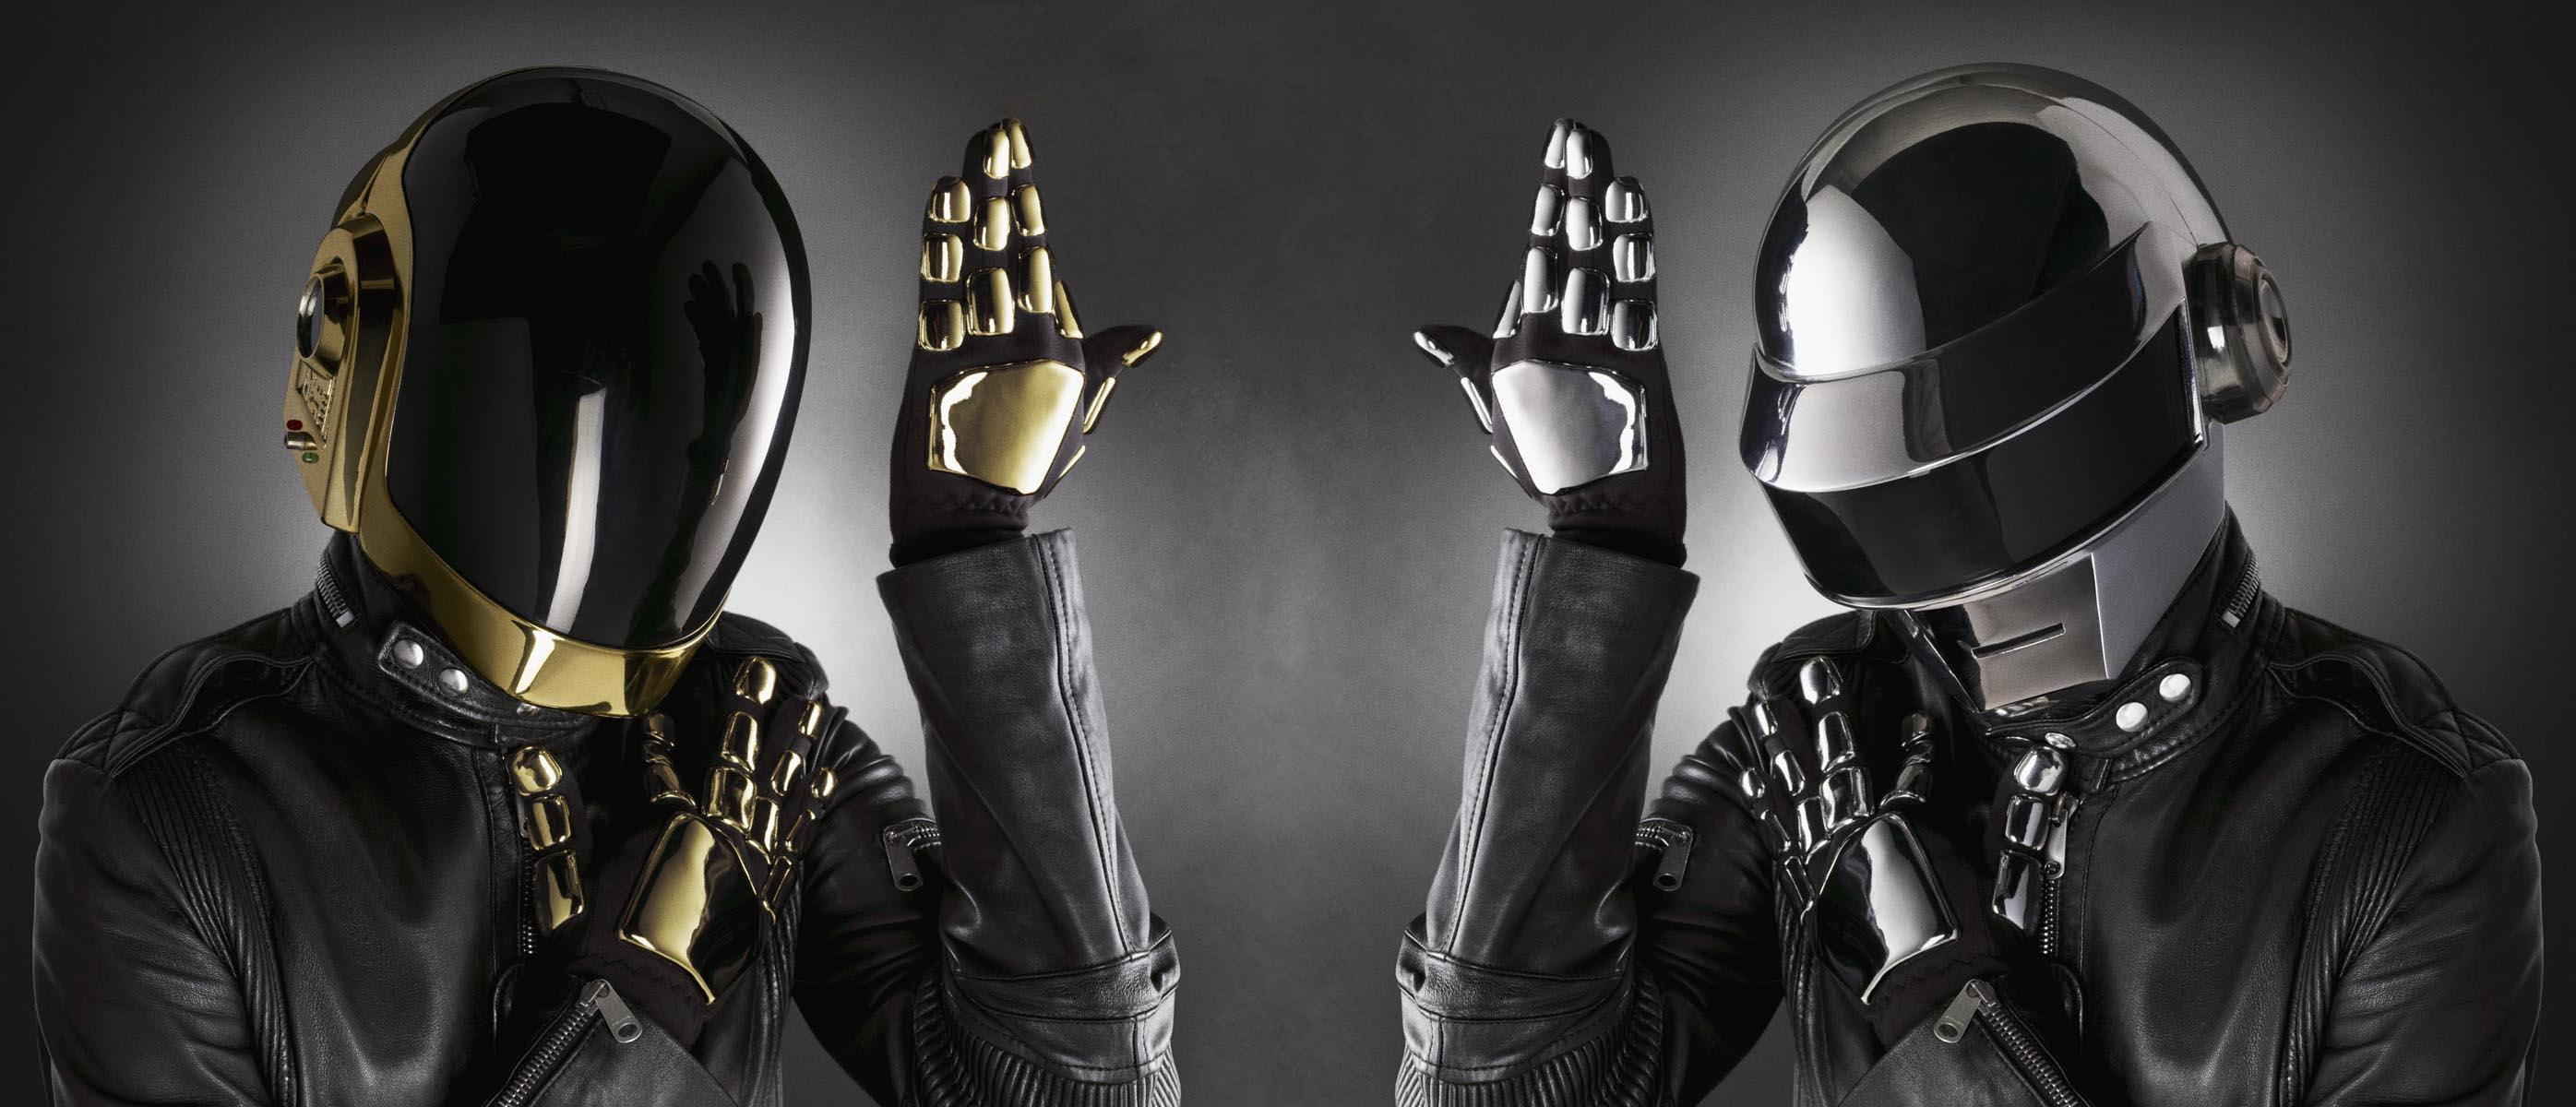 Daft Punk, punk - desktop wallpaper